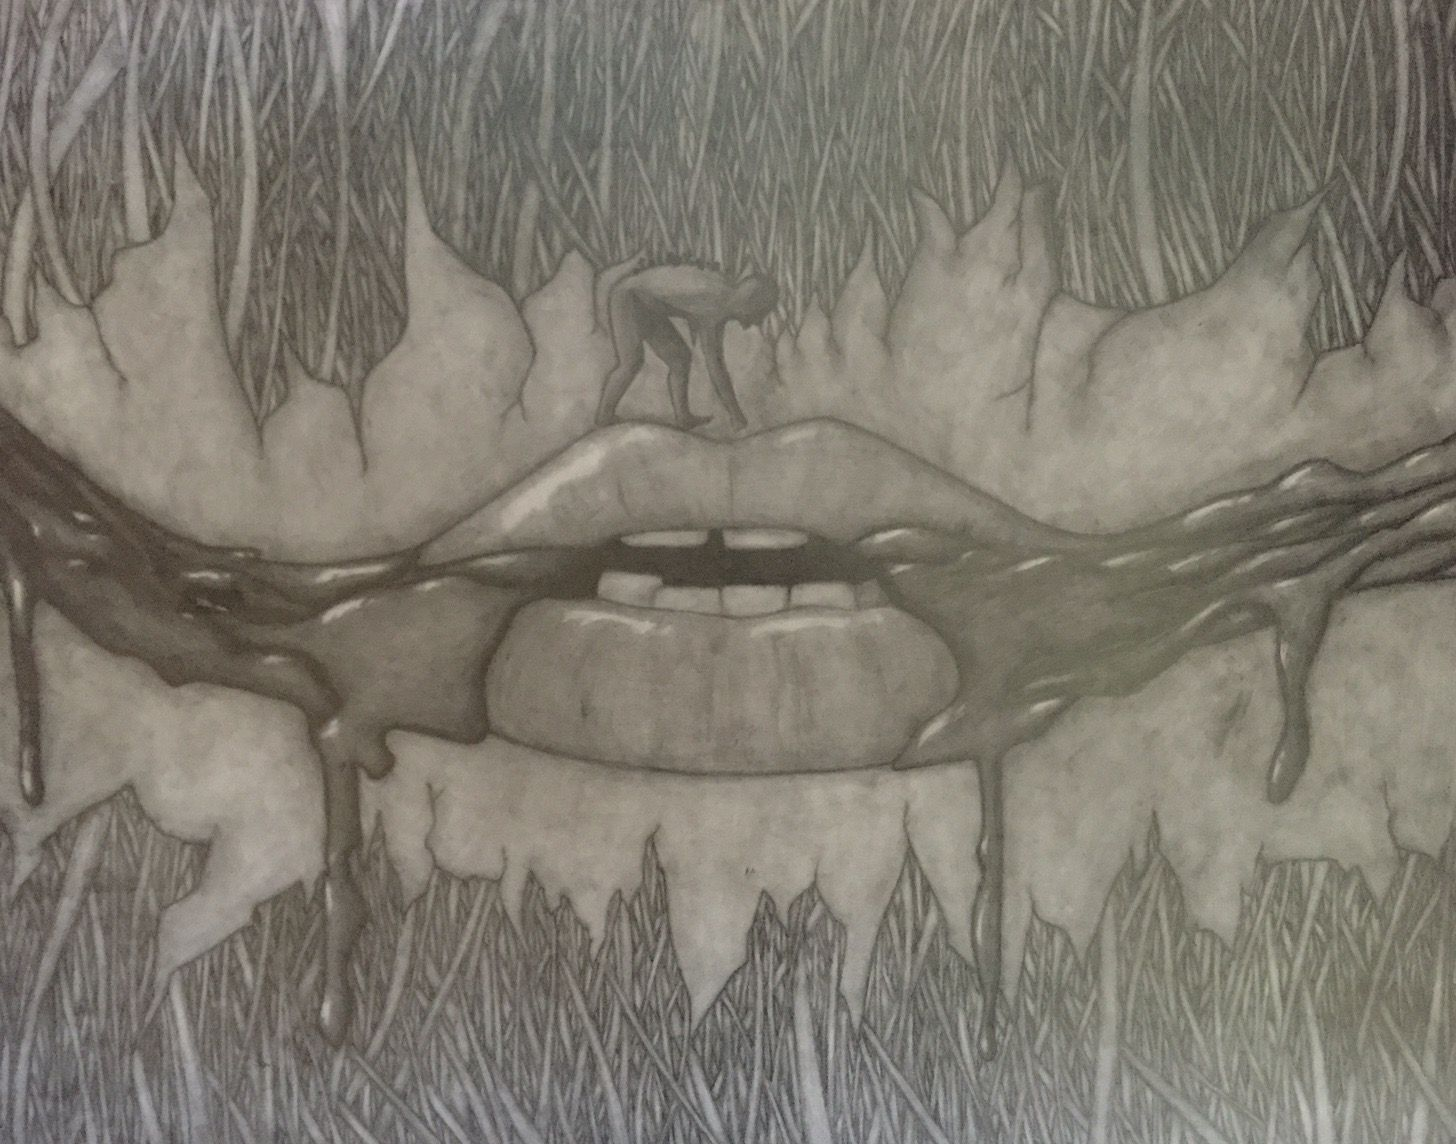 1456x1144 Human's Death Trap (Mouth Blood Design Skin And Grave Graphite